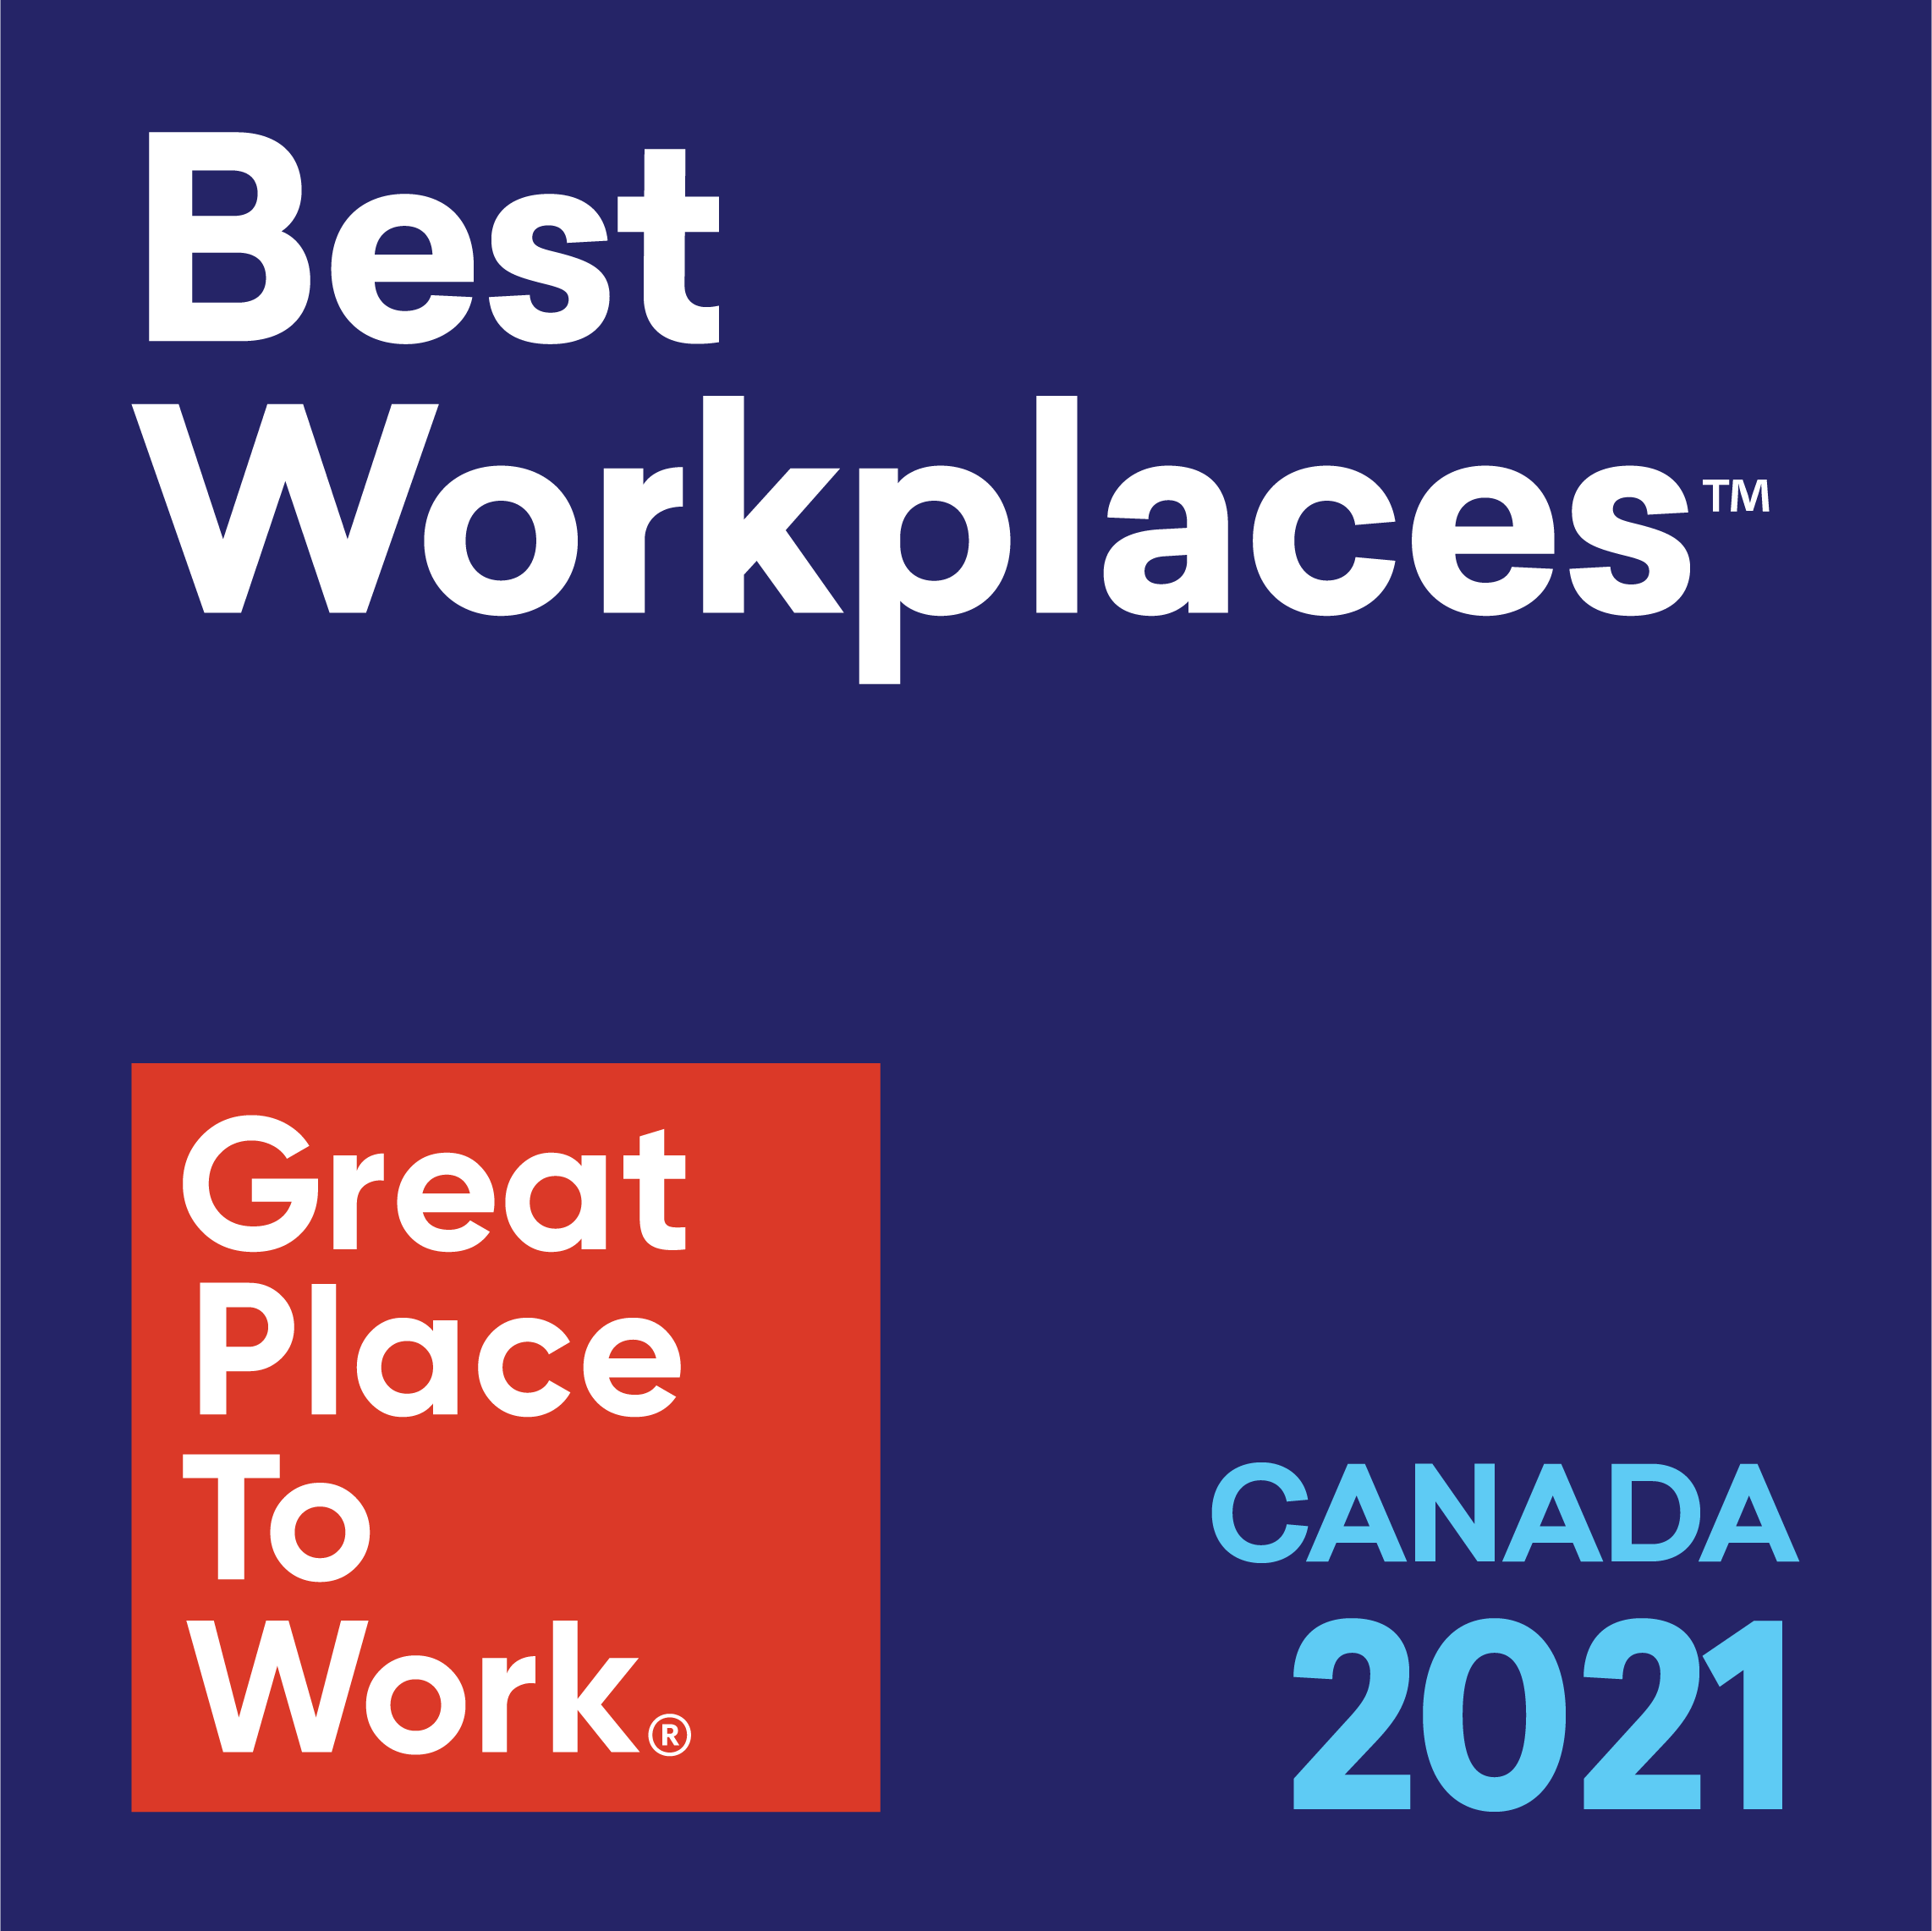 Best Workplaces in Canada 2021 Logo